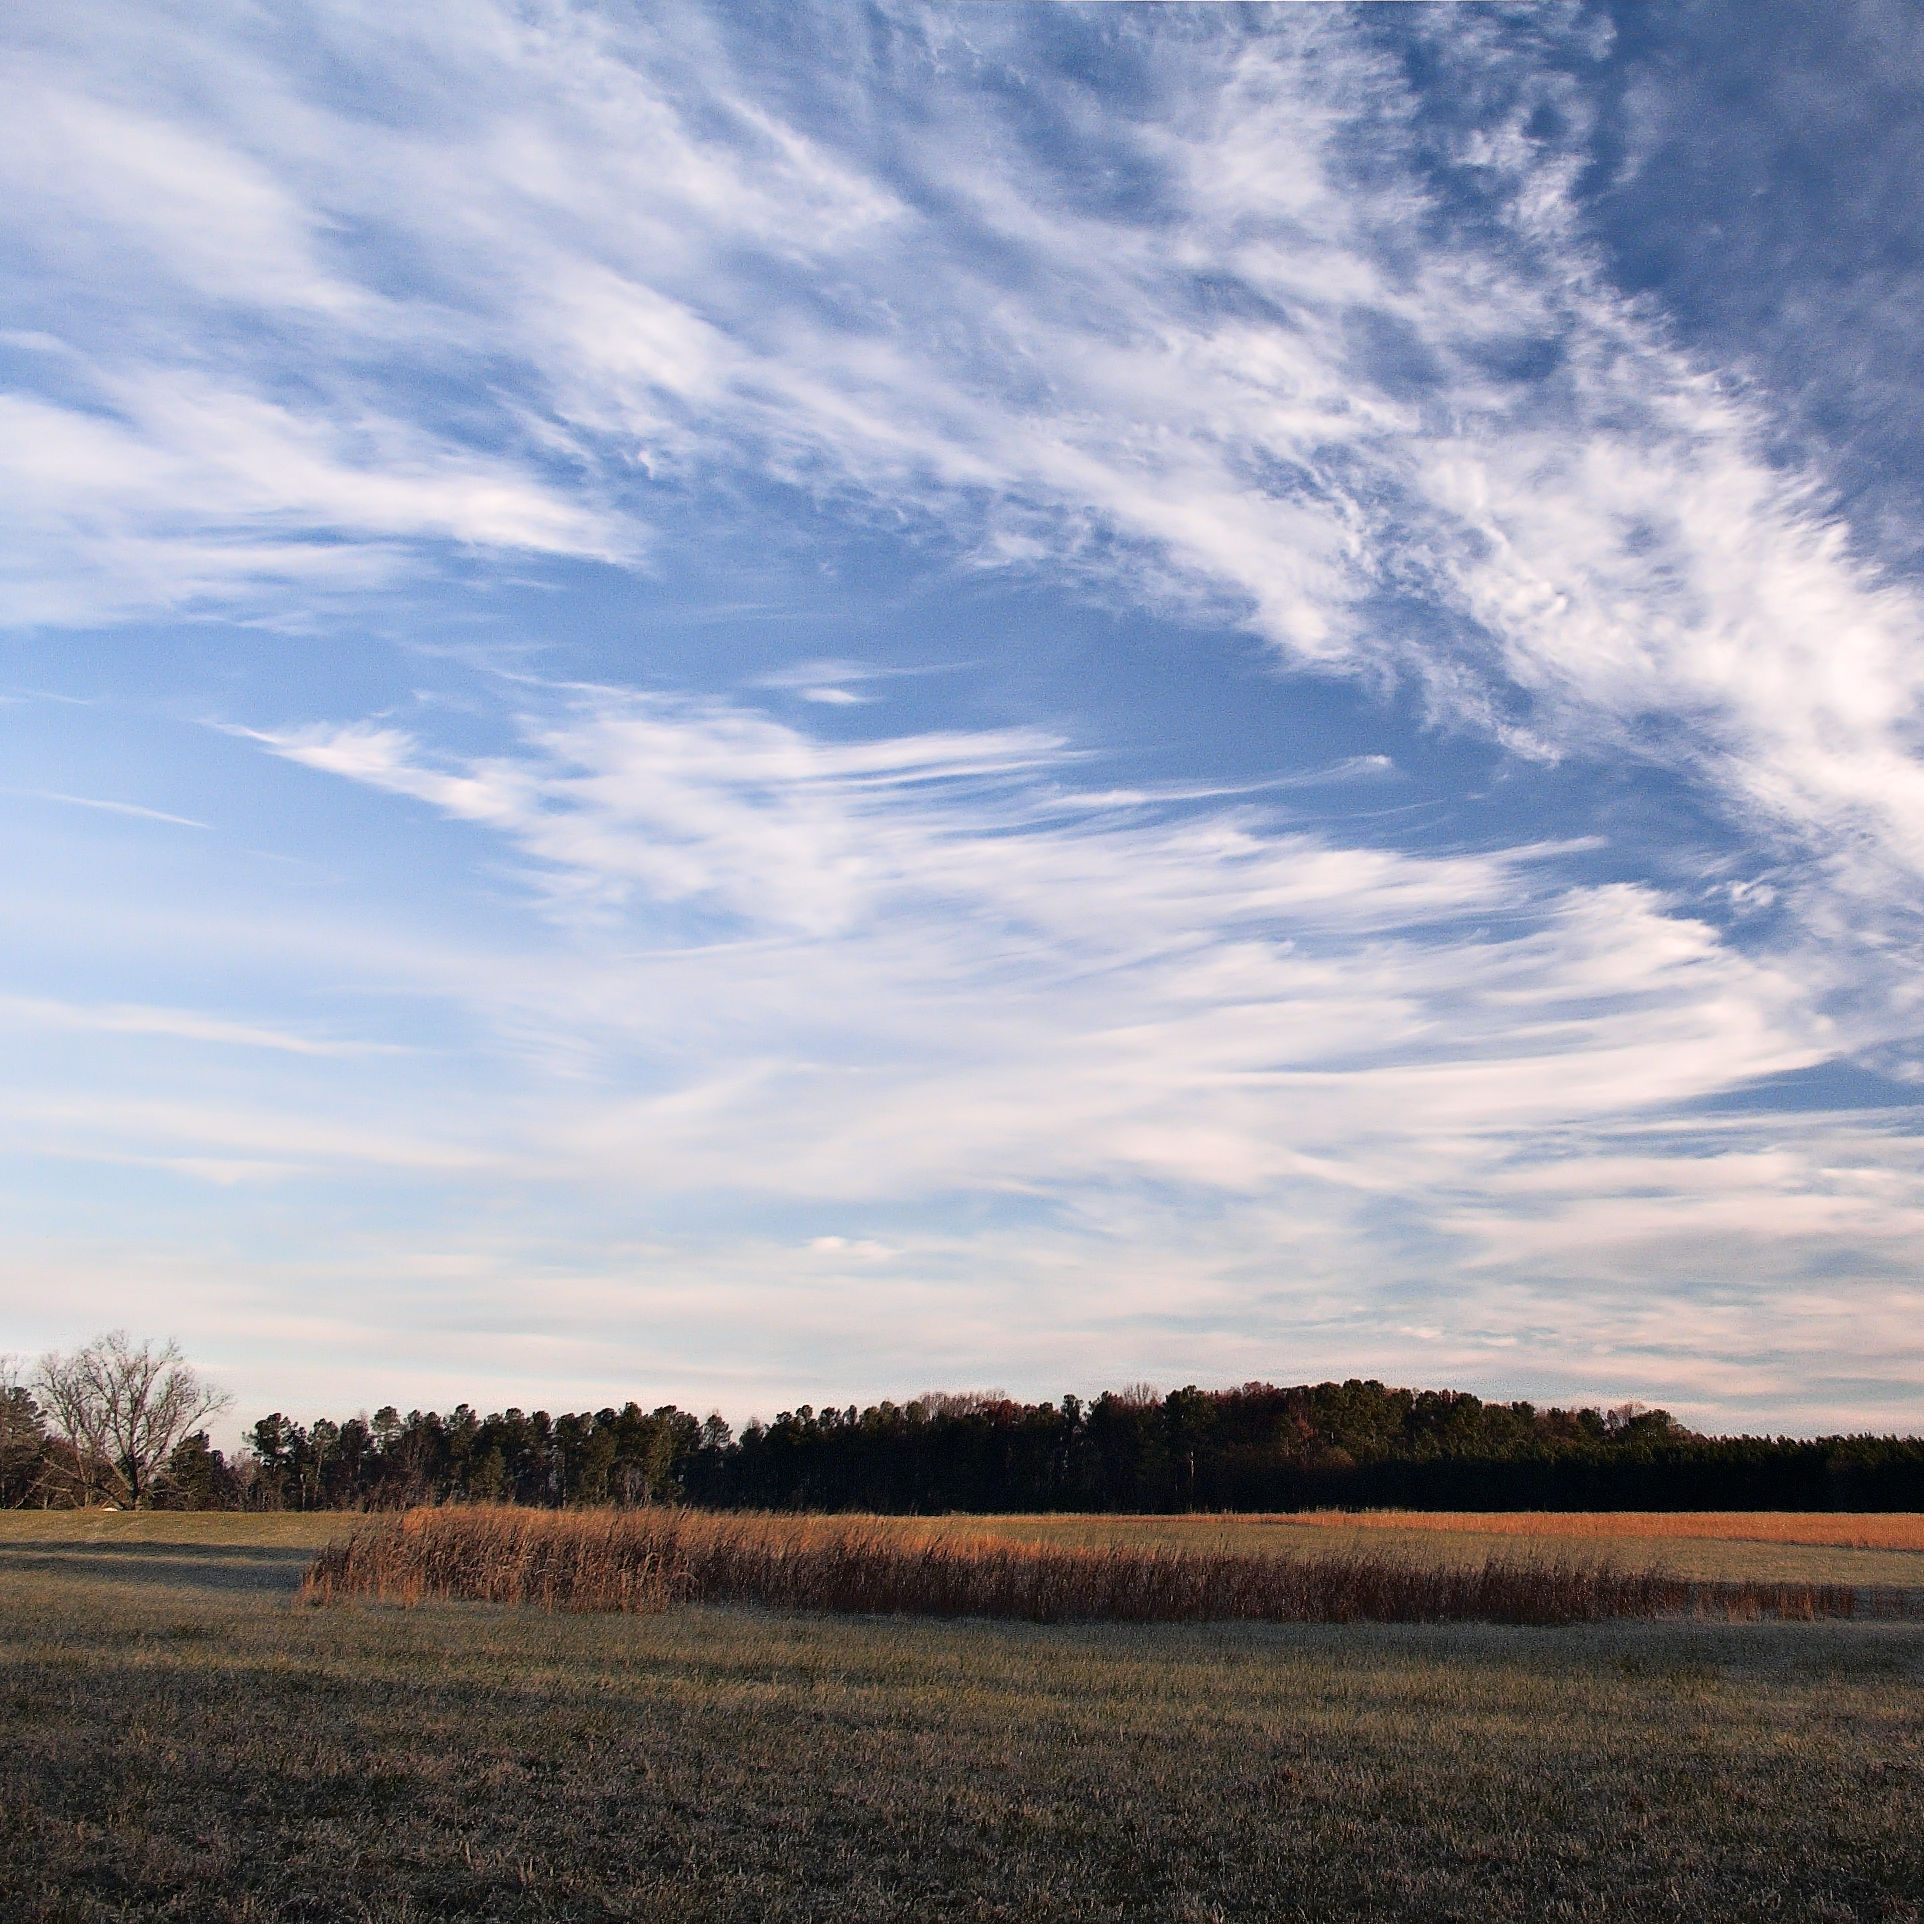 Cirrus clouds cold day gwbcgn